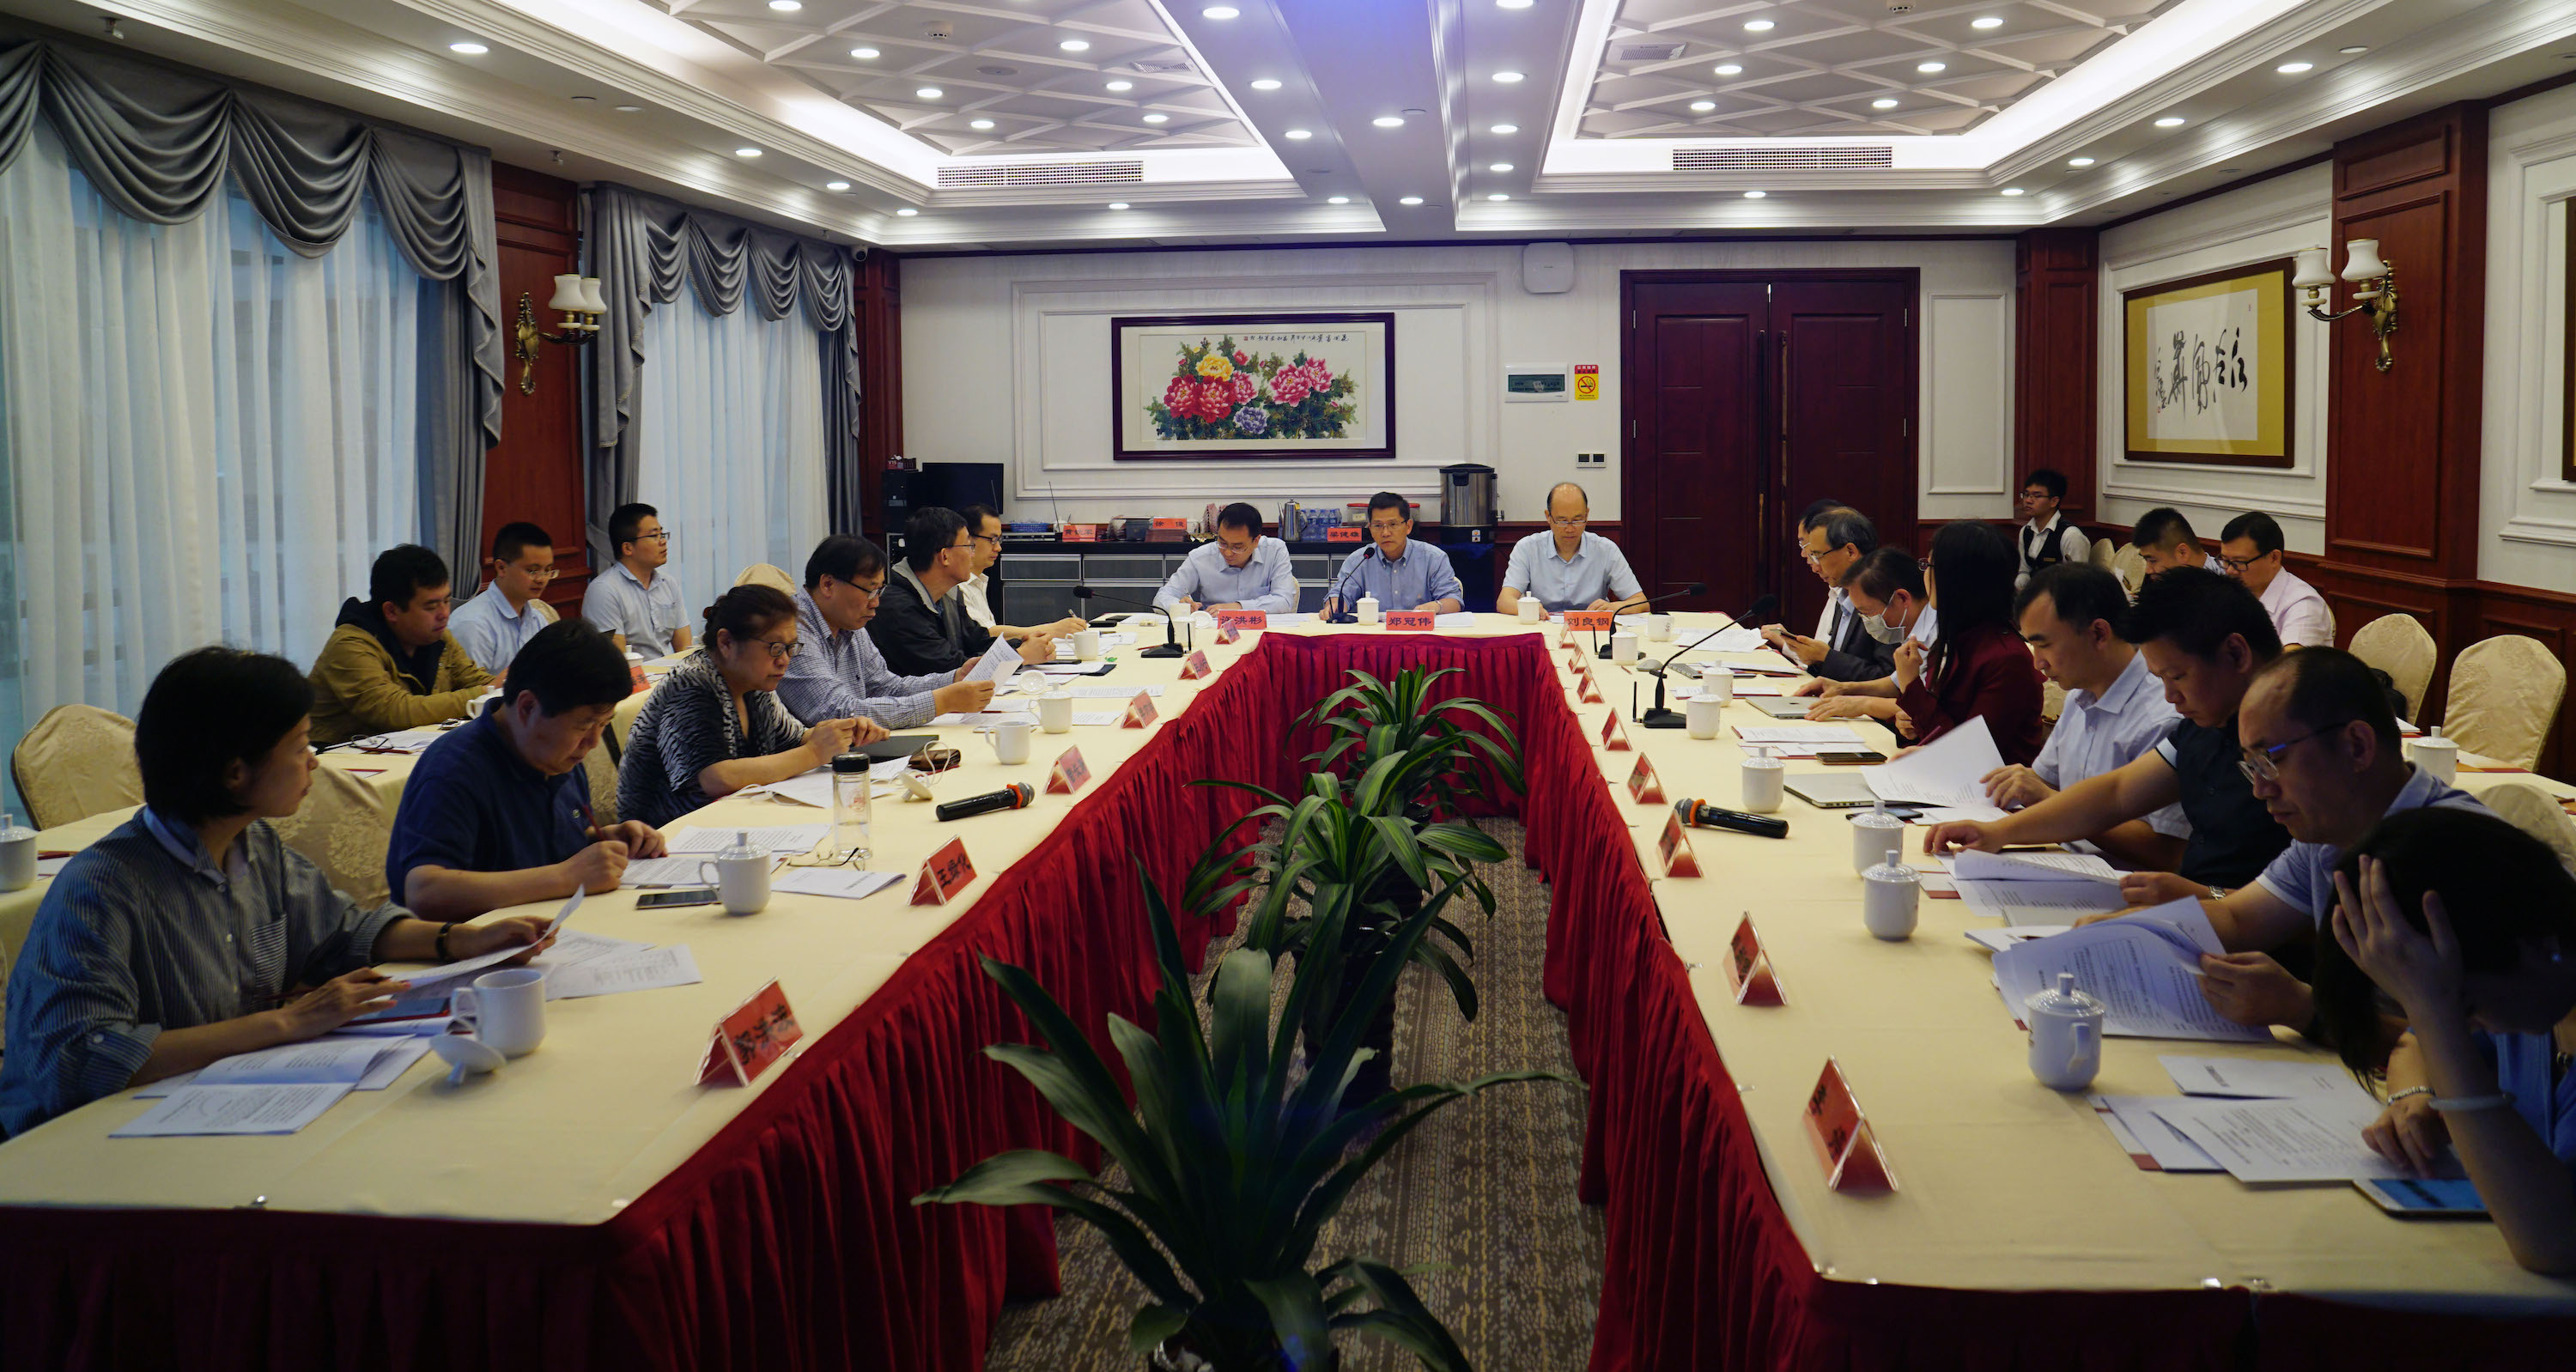 FDCT Held Meeting on Preparation of Guidelines for Macao's Key R&D Funding Projects